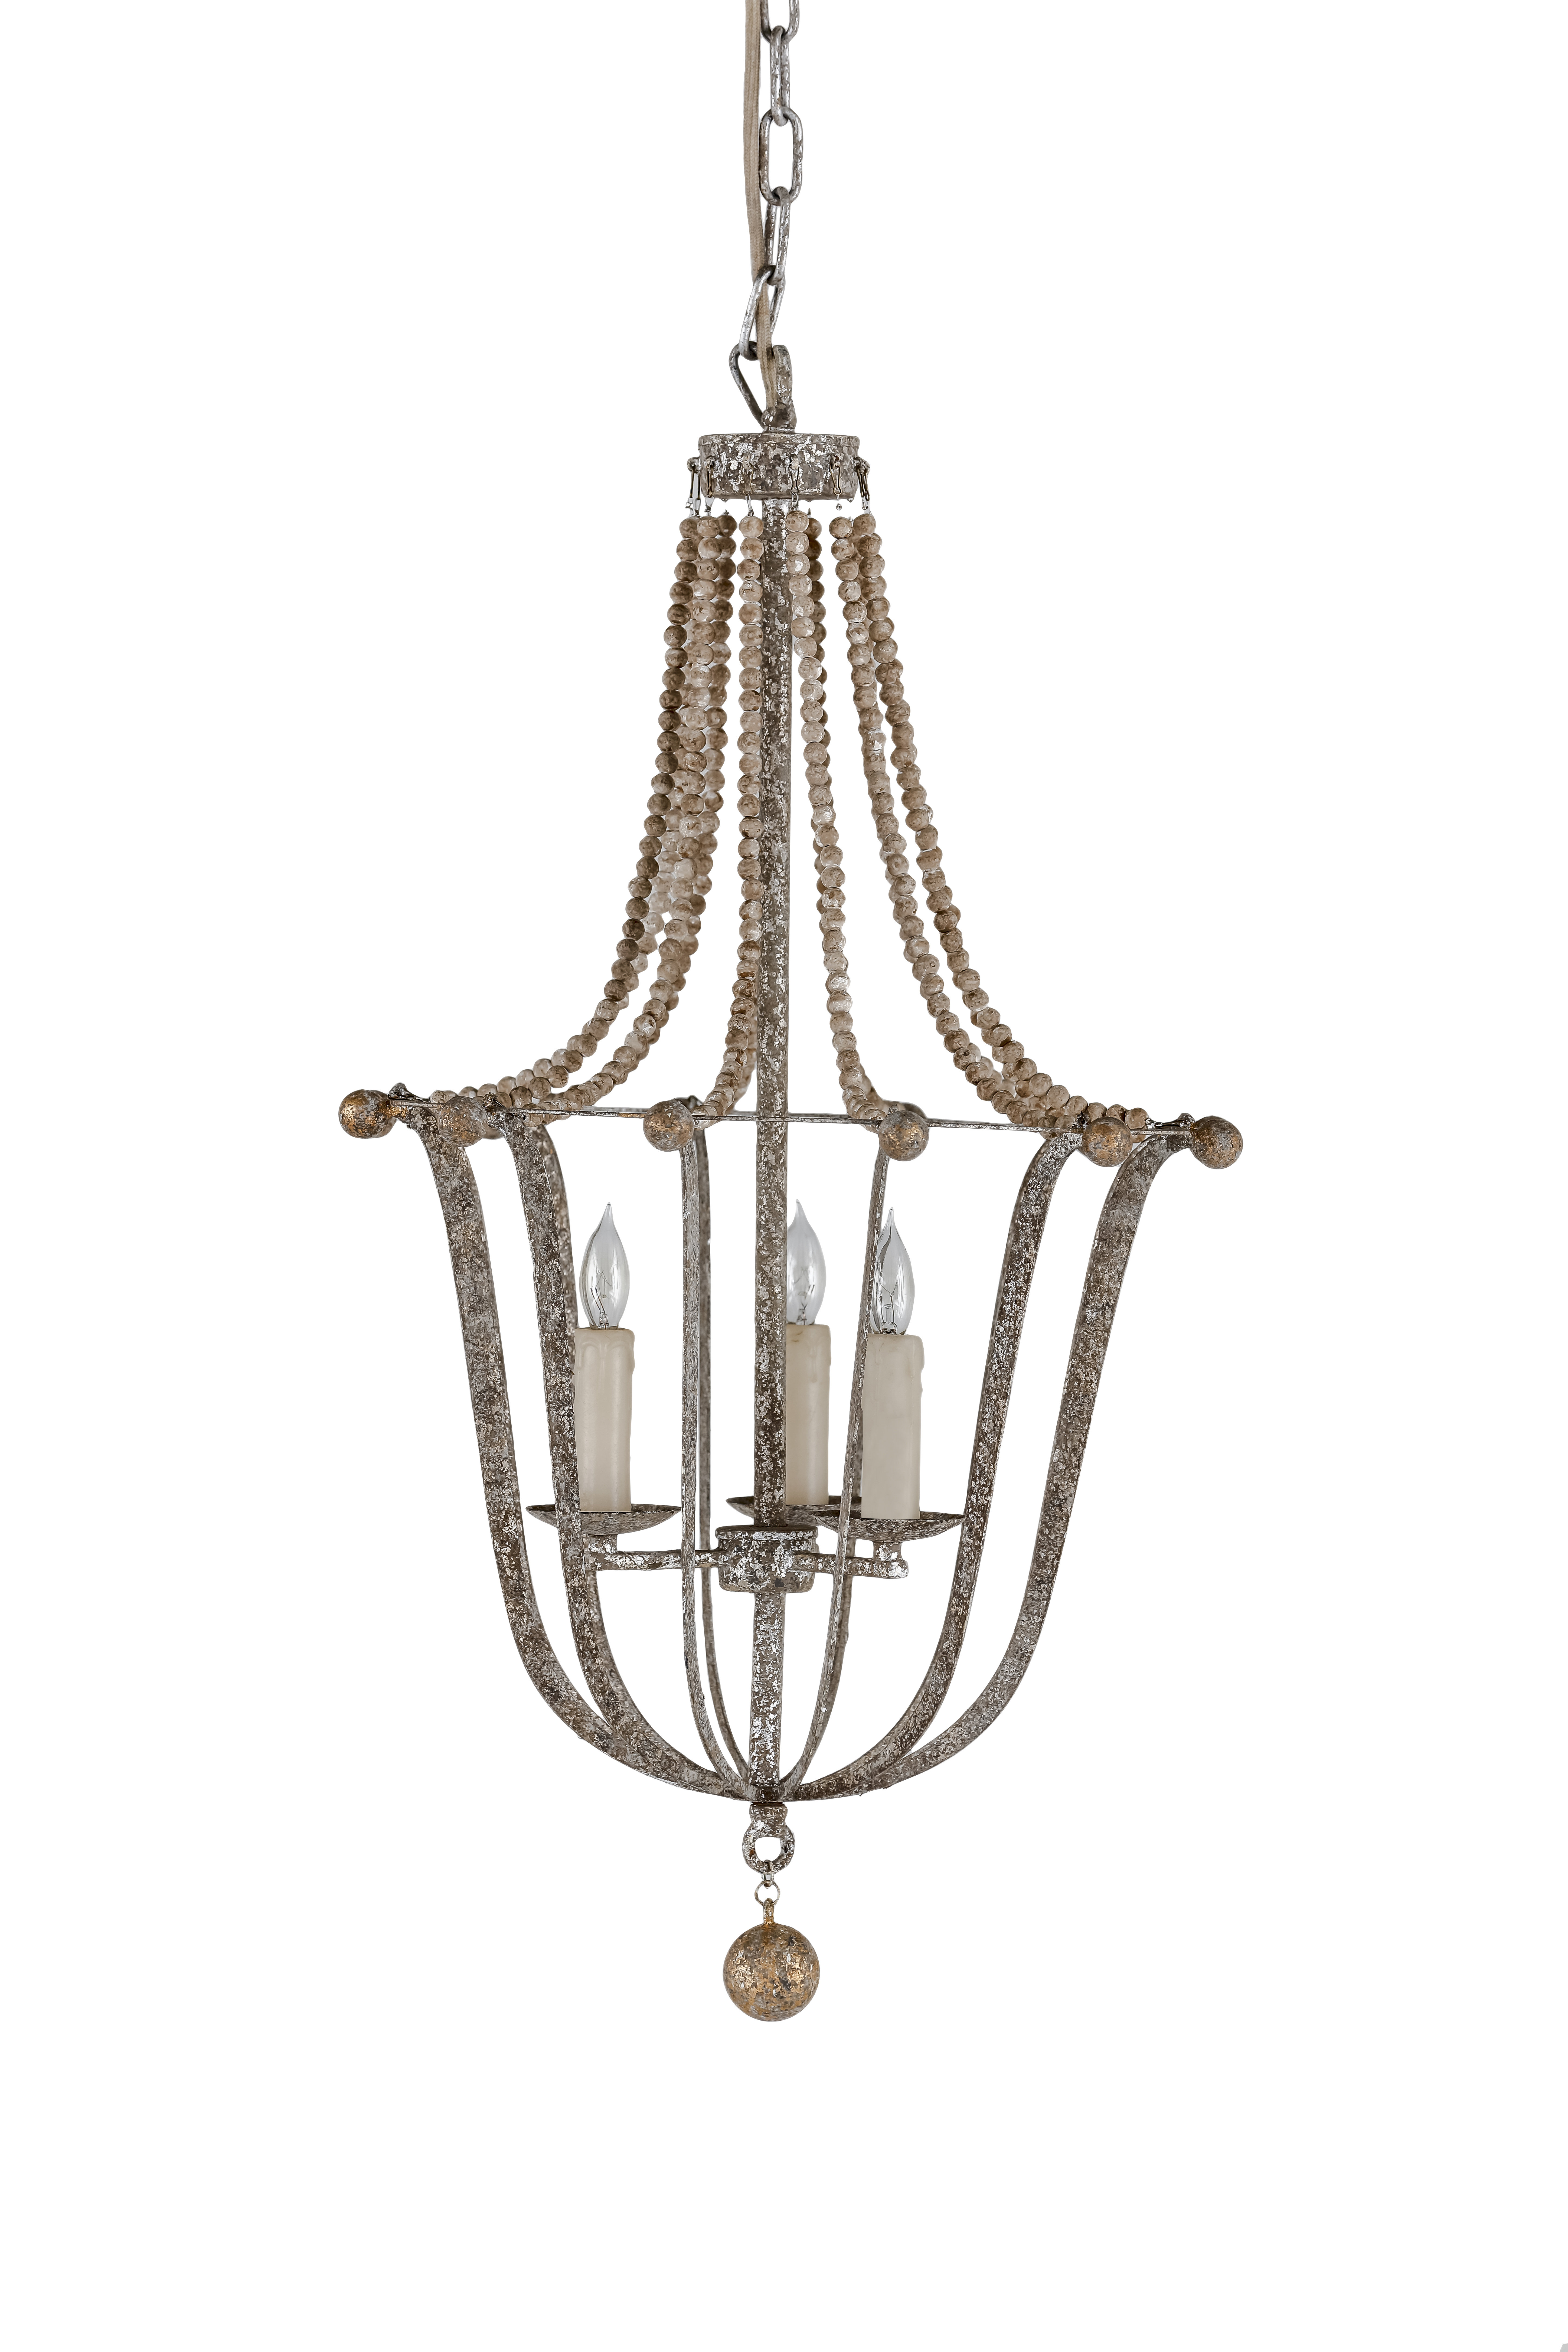 Most Recent Nehemiah 3 Light Empire Chandeliers Pertaining To Jenna 3 Light Empire Chandelier (View 4 of 20)